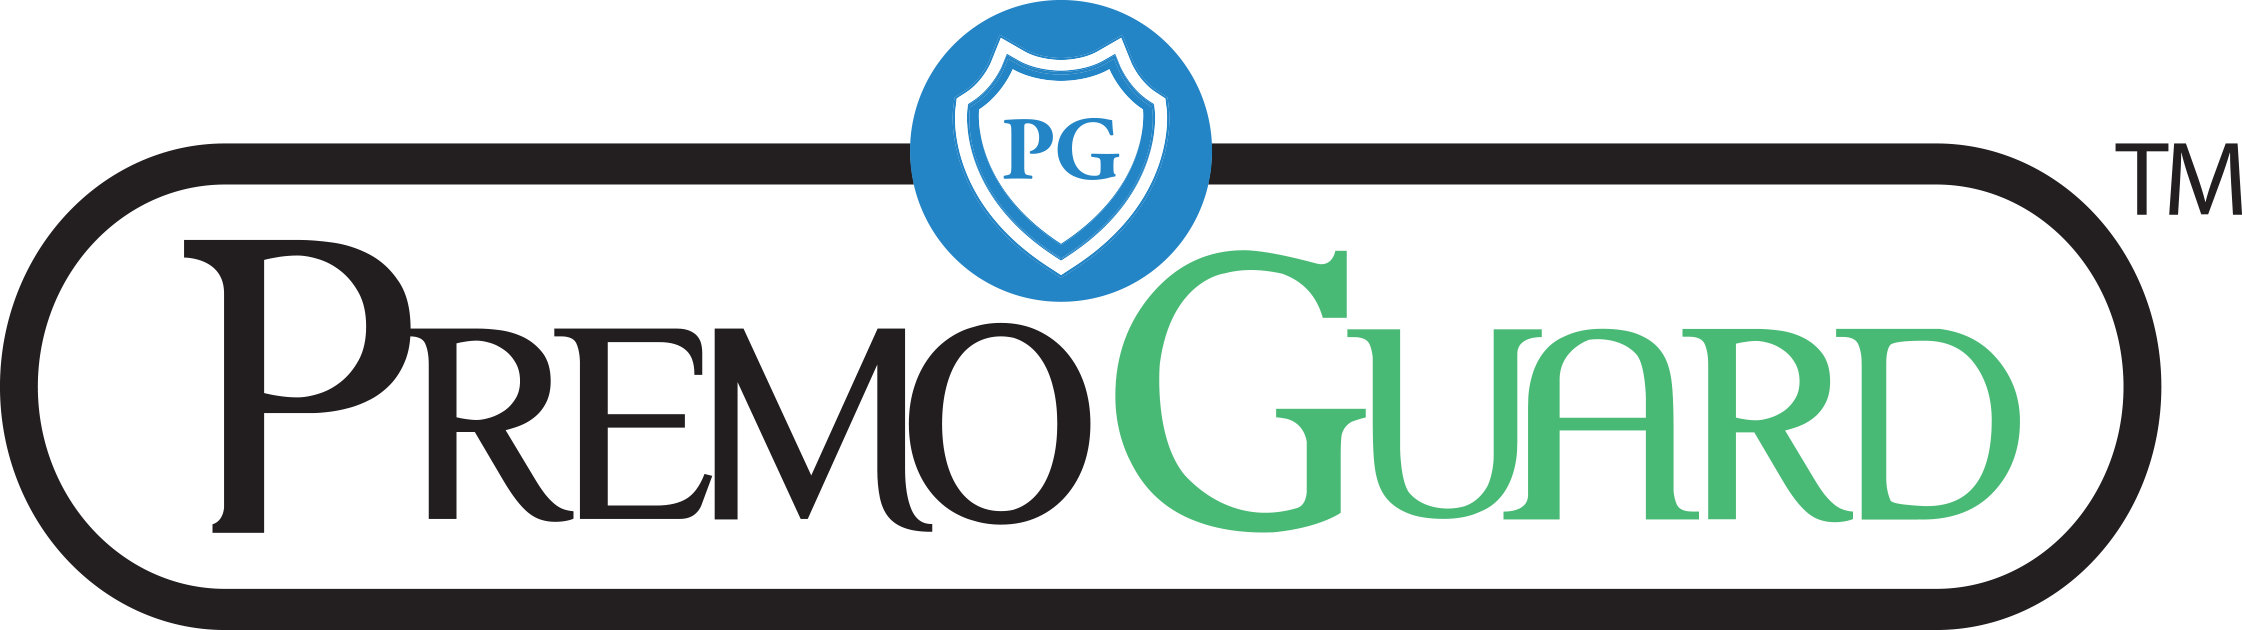 Premo Guard Bed Bug Spray Logo